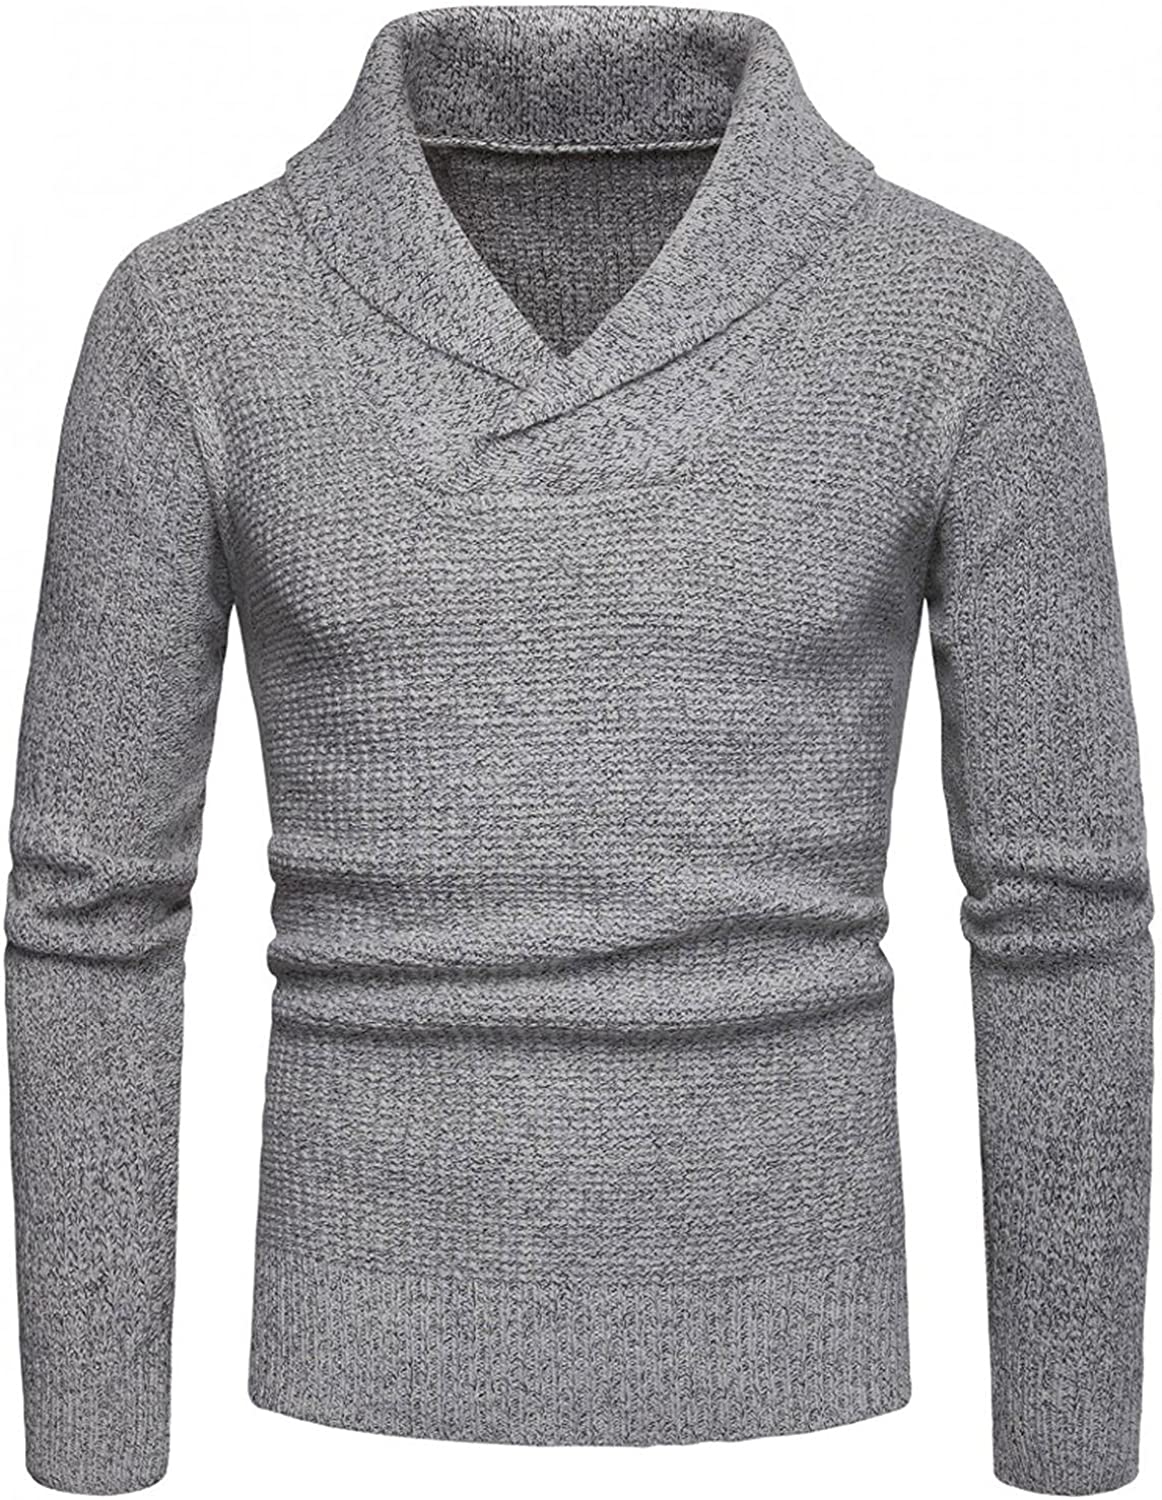 Mens Knitted Pullover Sweaters Long Sleeve V-Neck Jumper Casual Stylish Knitwear Lightweight Turtleneck Sweatershirts